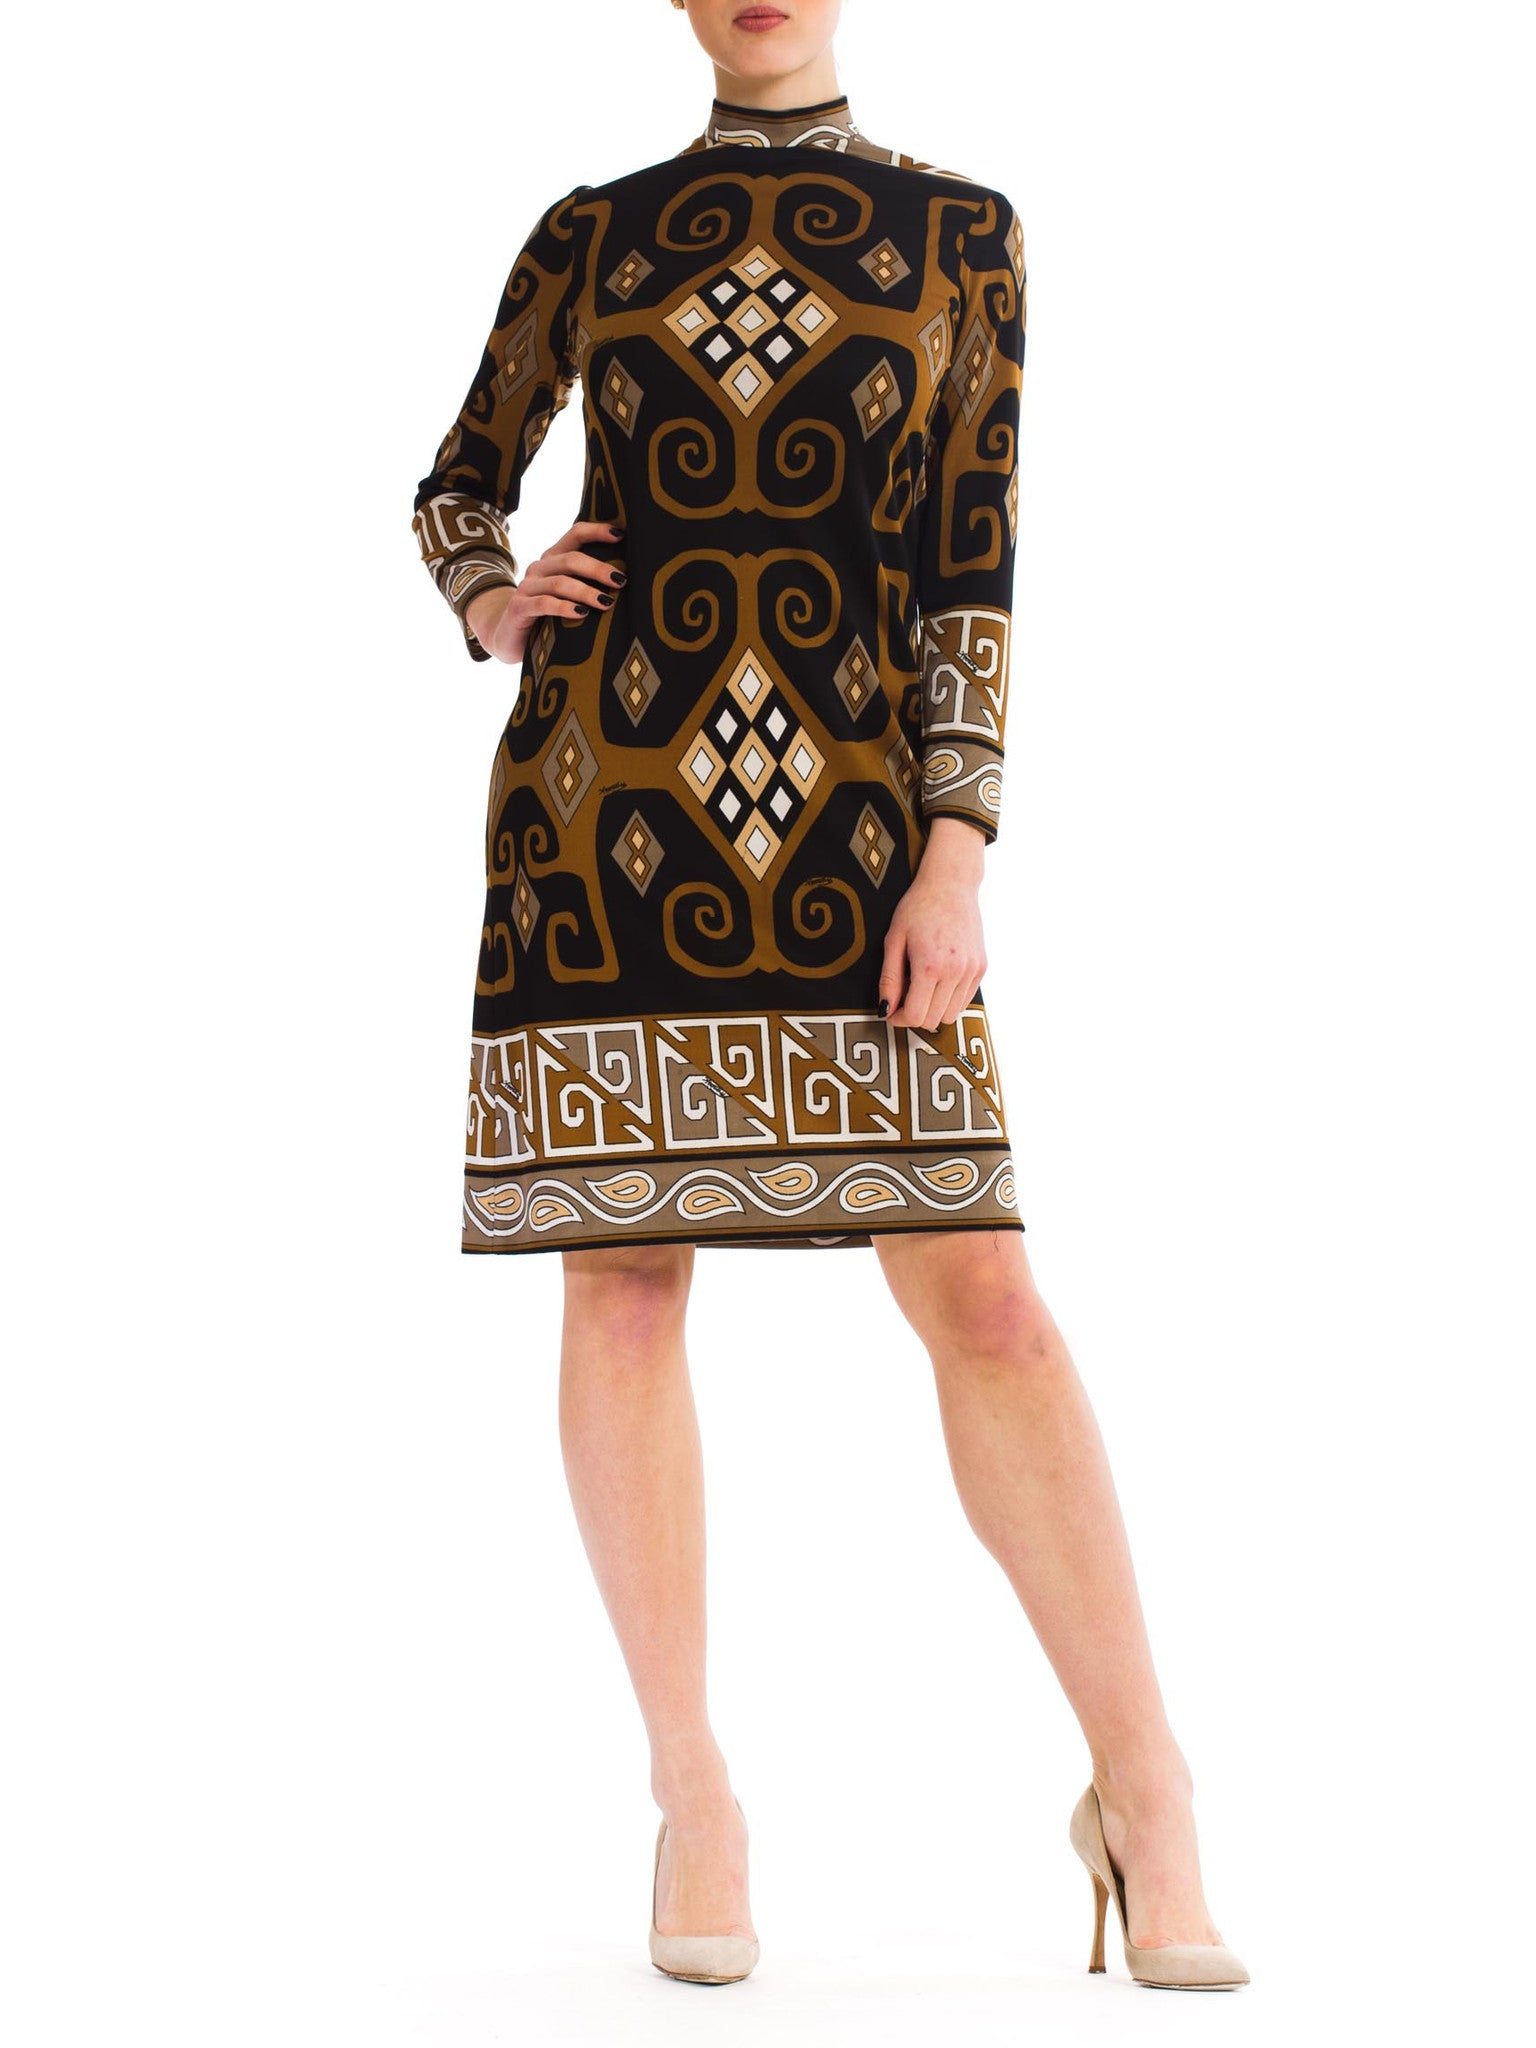 Vintage 1960s Brown Black and White Tribal Print Dress